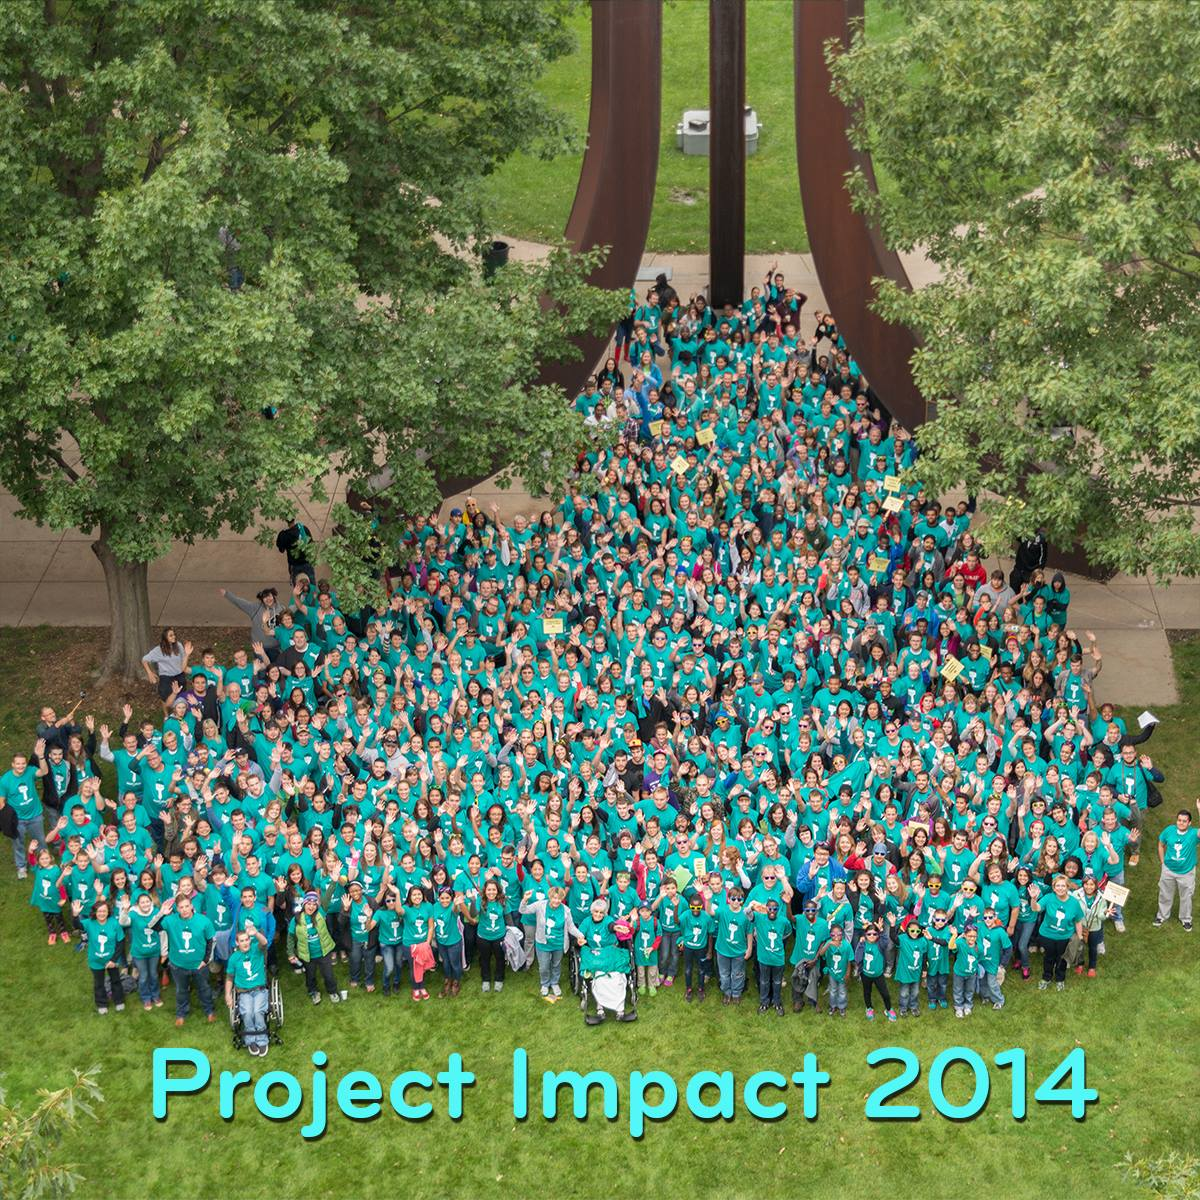 Project Impact 2014 | The Kardia Blog